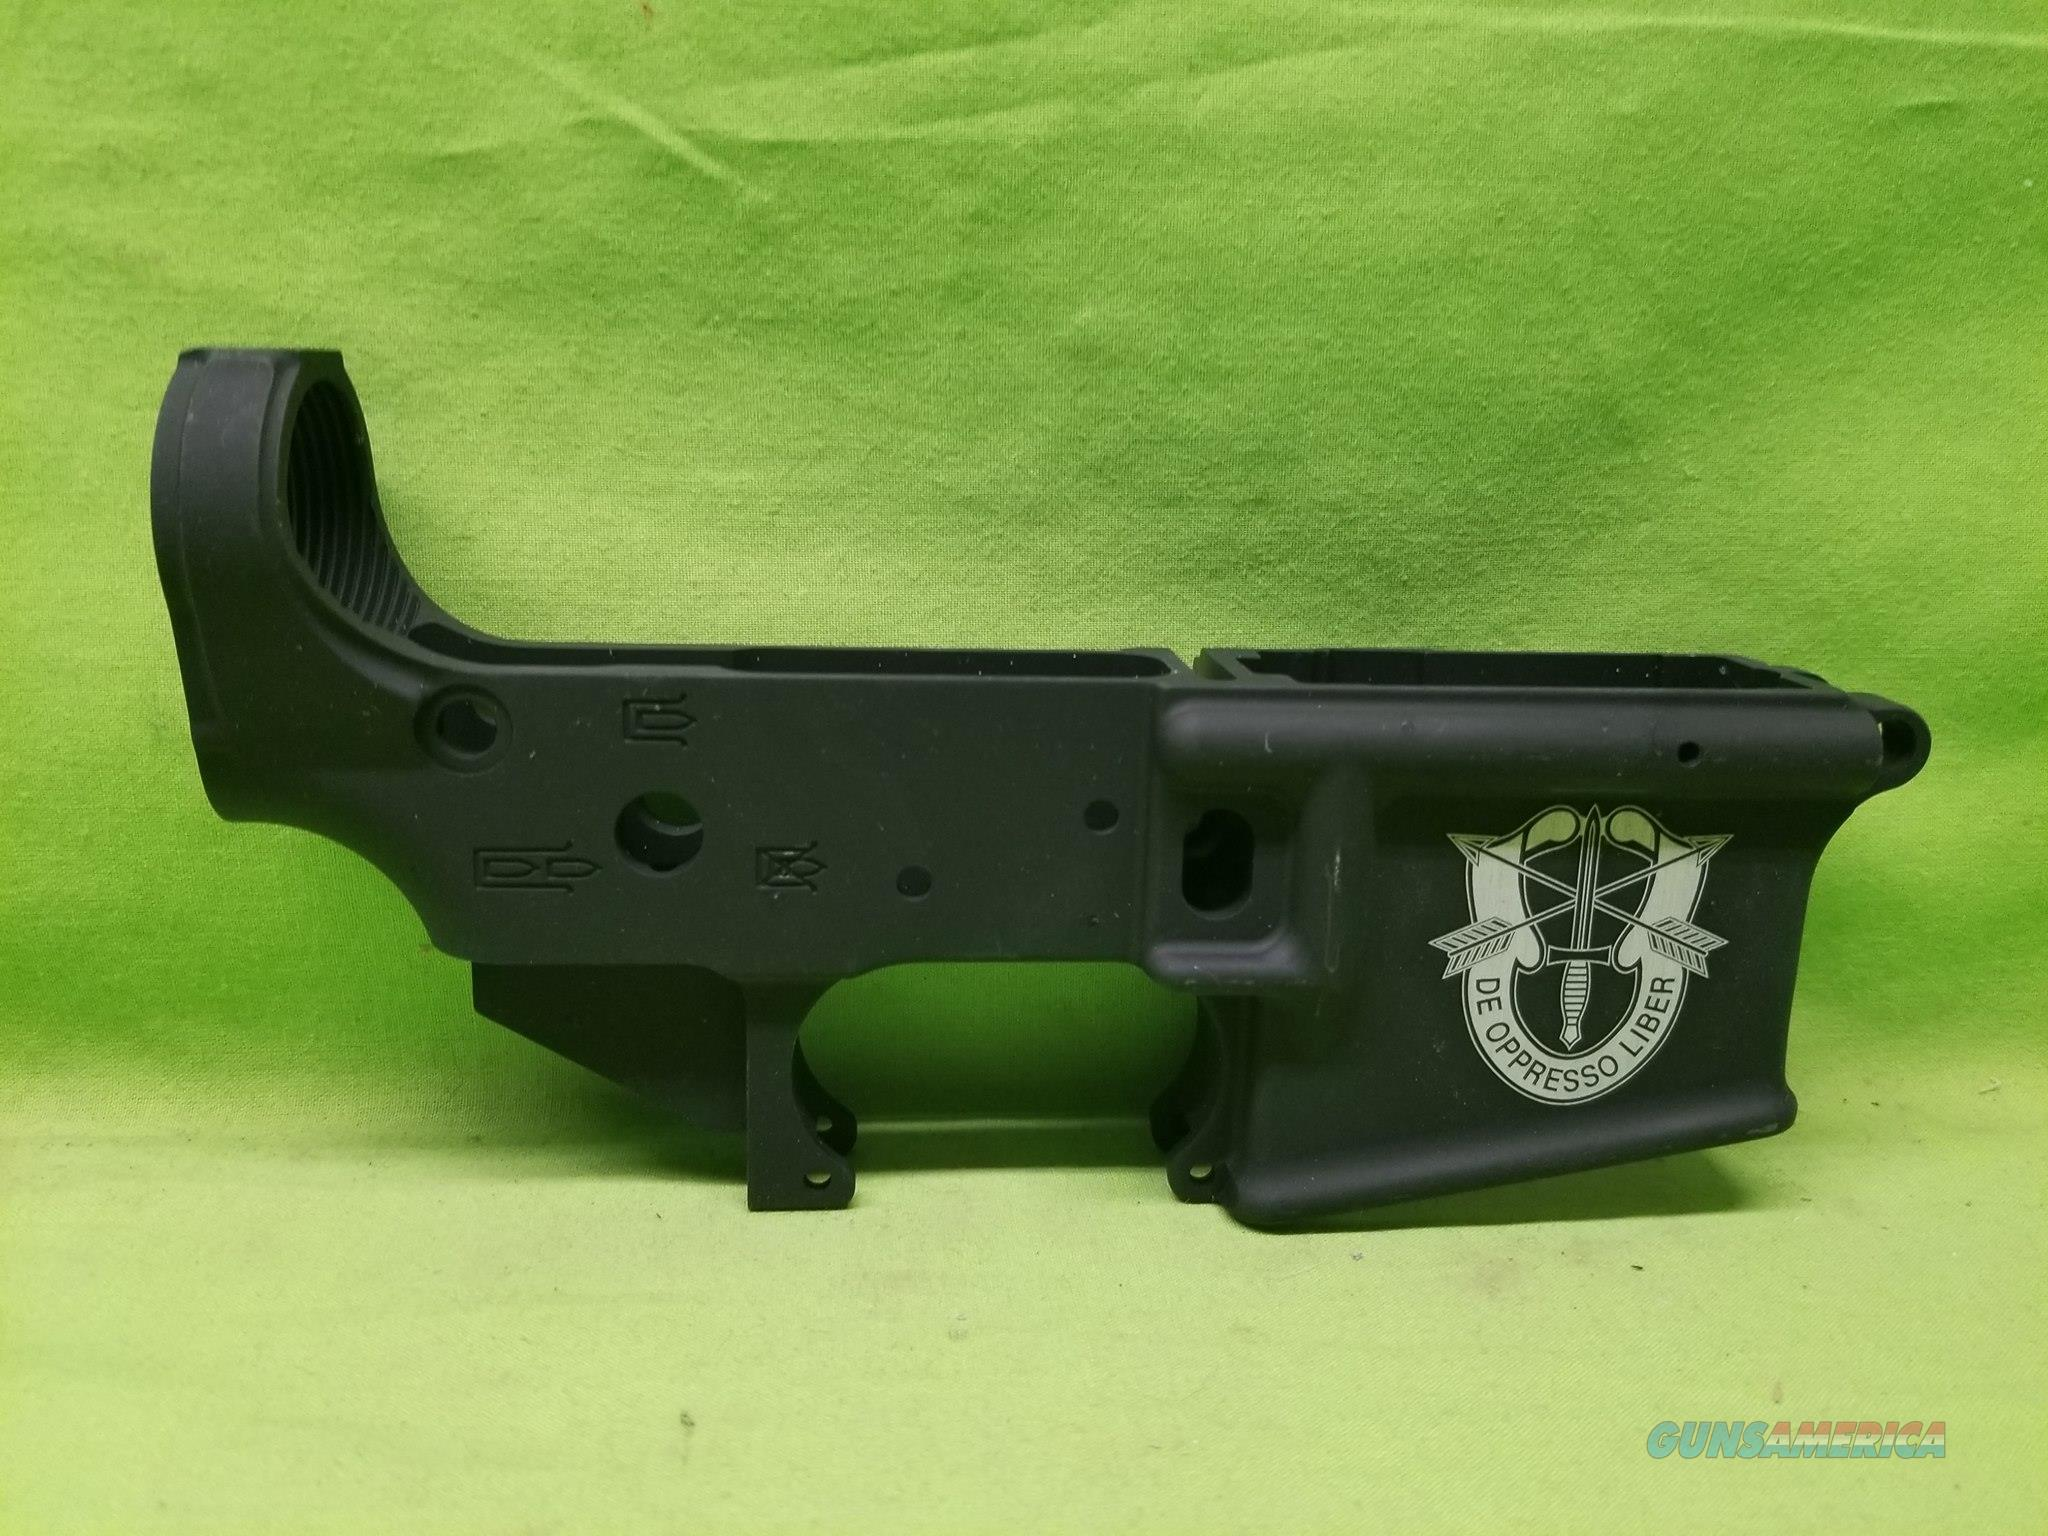 AA TACTICAL TAC-L WING STRIPPED LOWER SF CREST SPECIAL FORCES  Guns > Rifles > AR-15 Rifles - Small Manufacturers > Lower Only